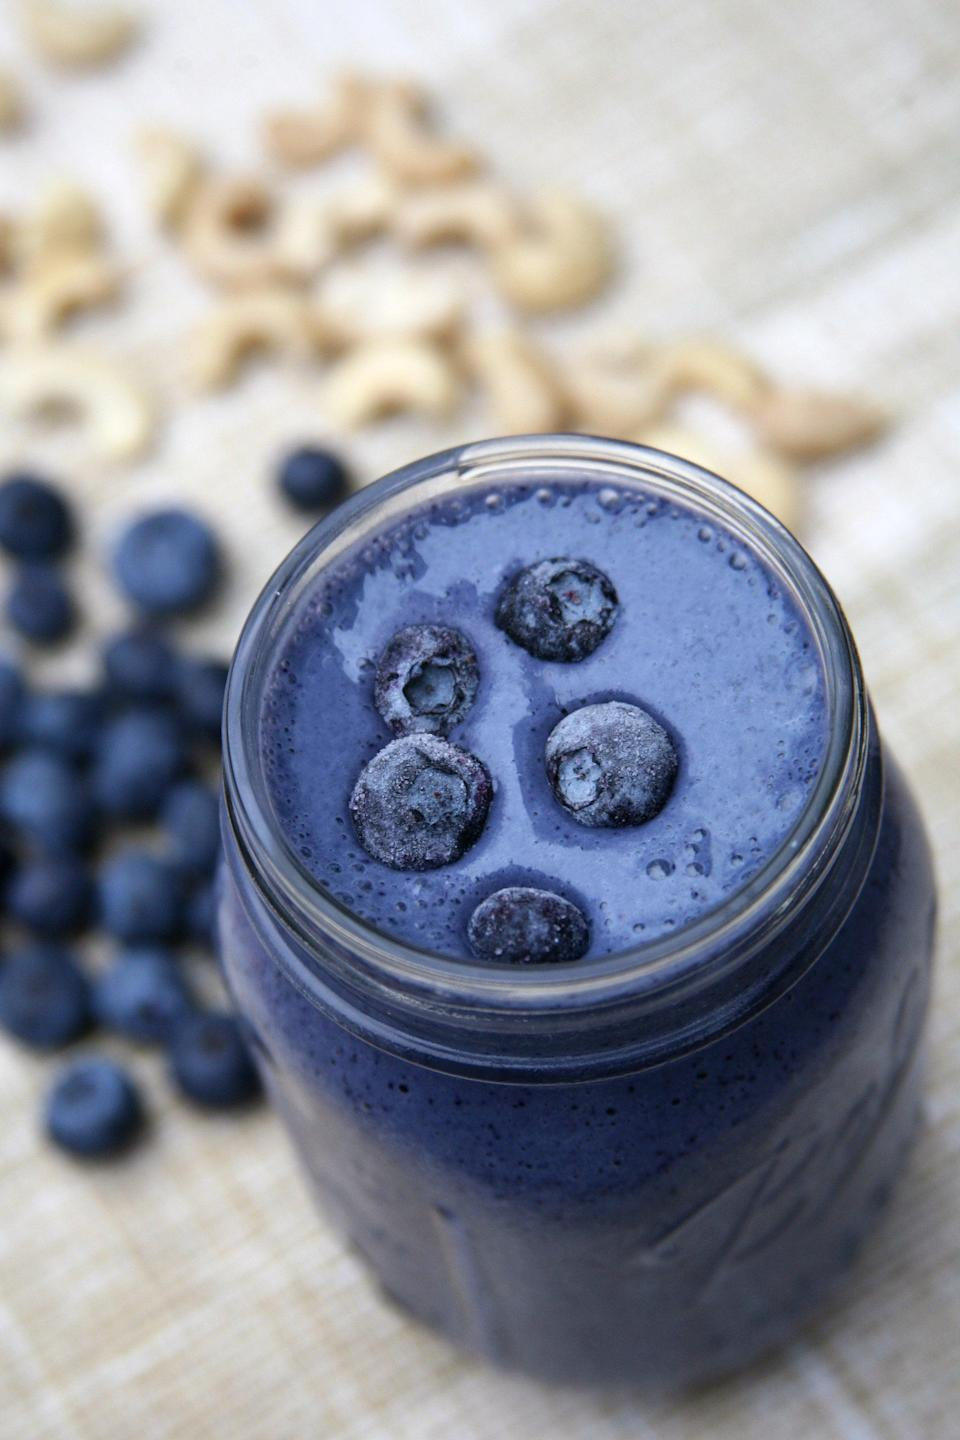 "<p>For the kind, sensitive, and compassionate Pisces, do something for yourself for once and make this decadent and imaginative blueberry cheesecake smoothie.</p> <p><strong>Get the recipe</strong>: <a href=""https://www.popsugar.com/fitness/Blueberry-Cheesecake-Smoothie-40681216"" class=""link rapid-noclick-resp"" rel=""nofollow noopener"" target=""_blank"" data-ylk=""slk:blueberry cheesecake smoothie"">blueberry cheesecake smoothie</a></p>"